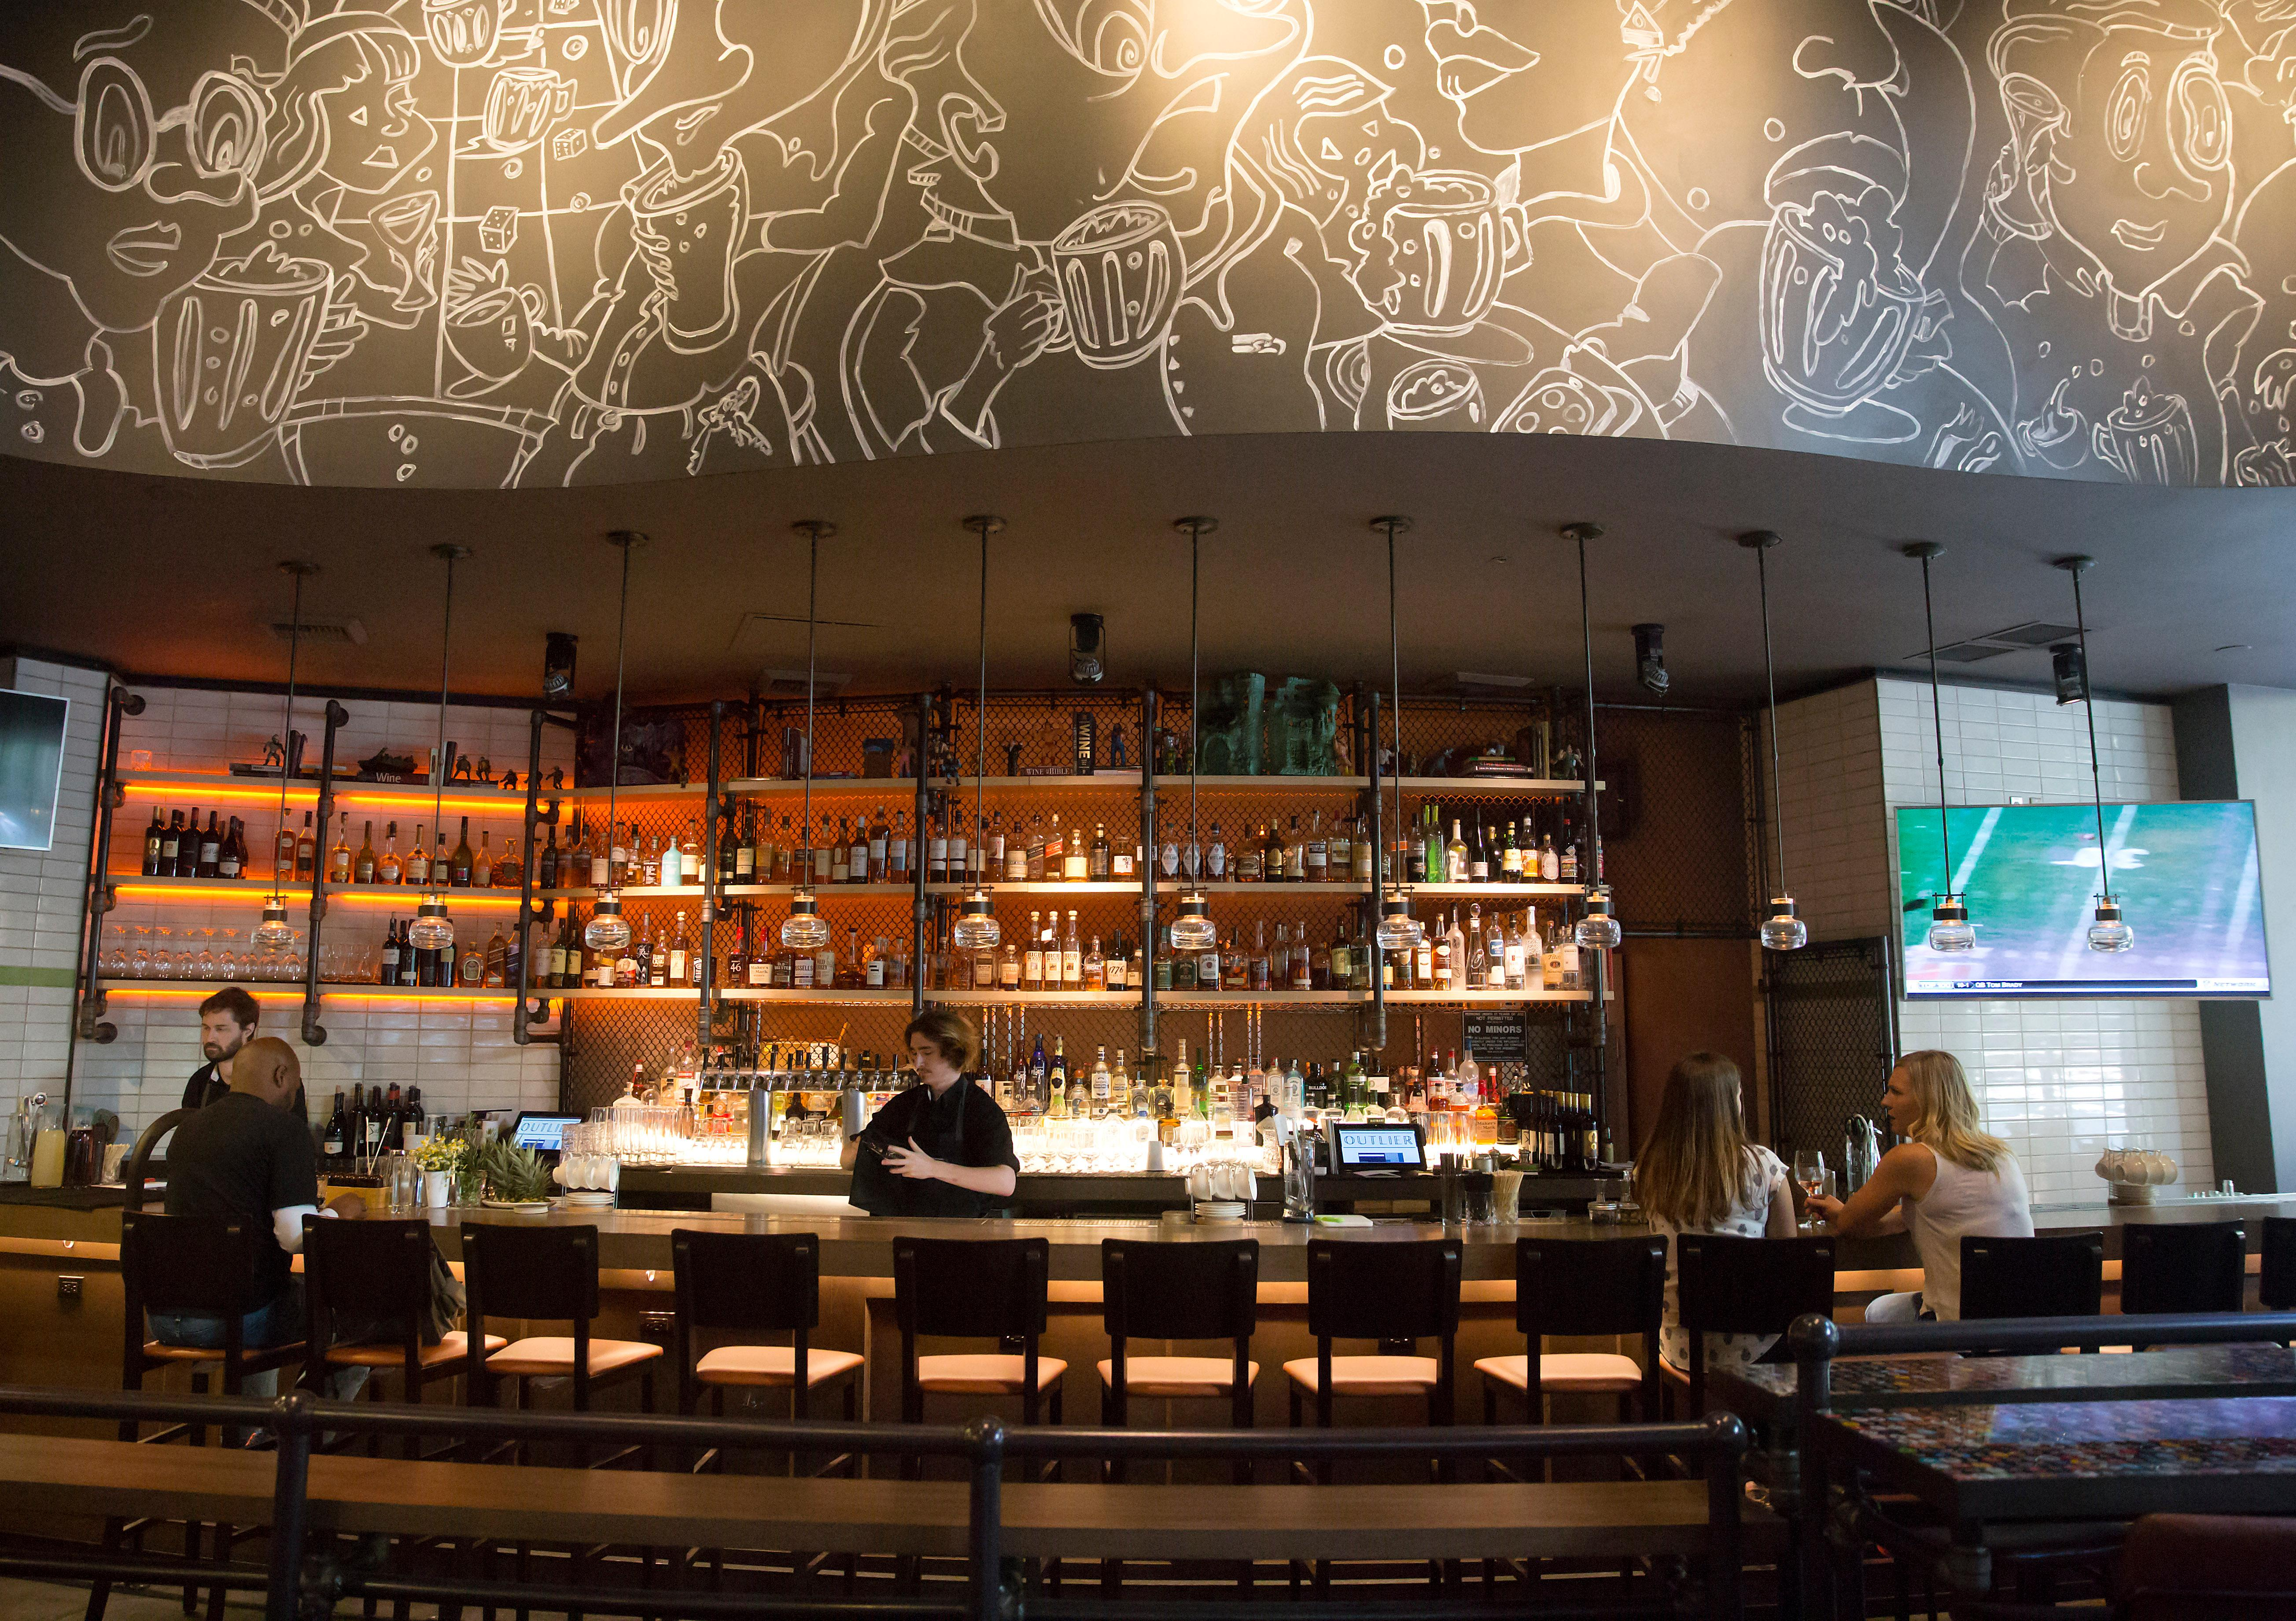 Outlier is located at 1101 4th Ave right by the Hotel Monaco, and pays homage to the fern bars of the 70s and 80s. Street art installations and a wall-sized beer-can . mural define the dining room, and the bustling atmosphere extends onto the seasonal outdoor patio. (Sy Bean / Seattle Refined)